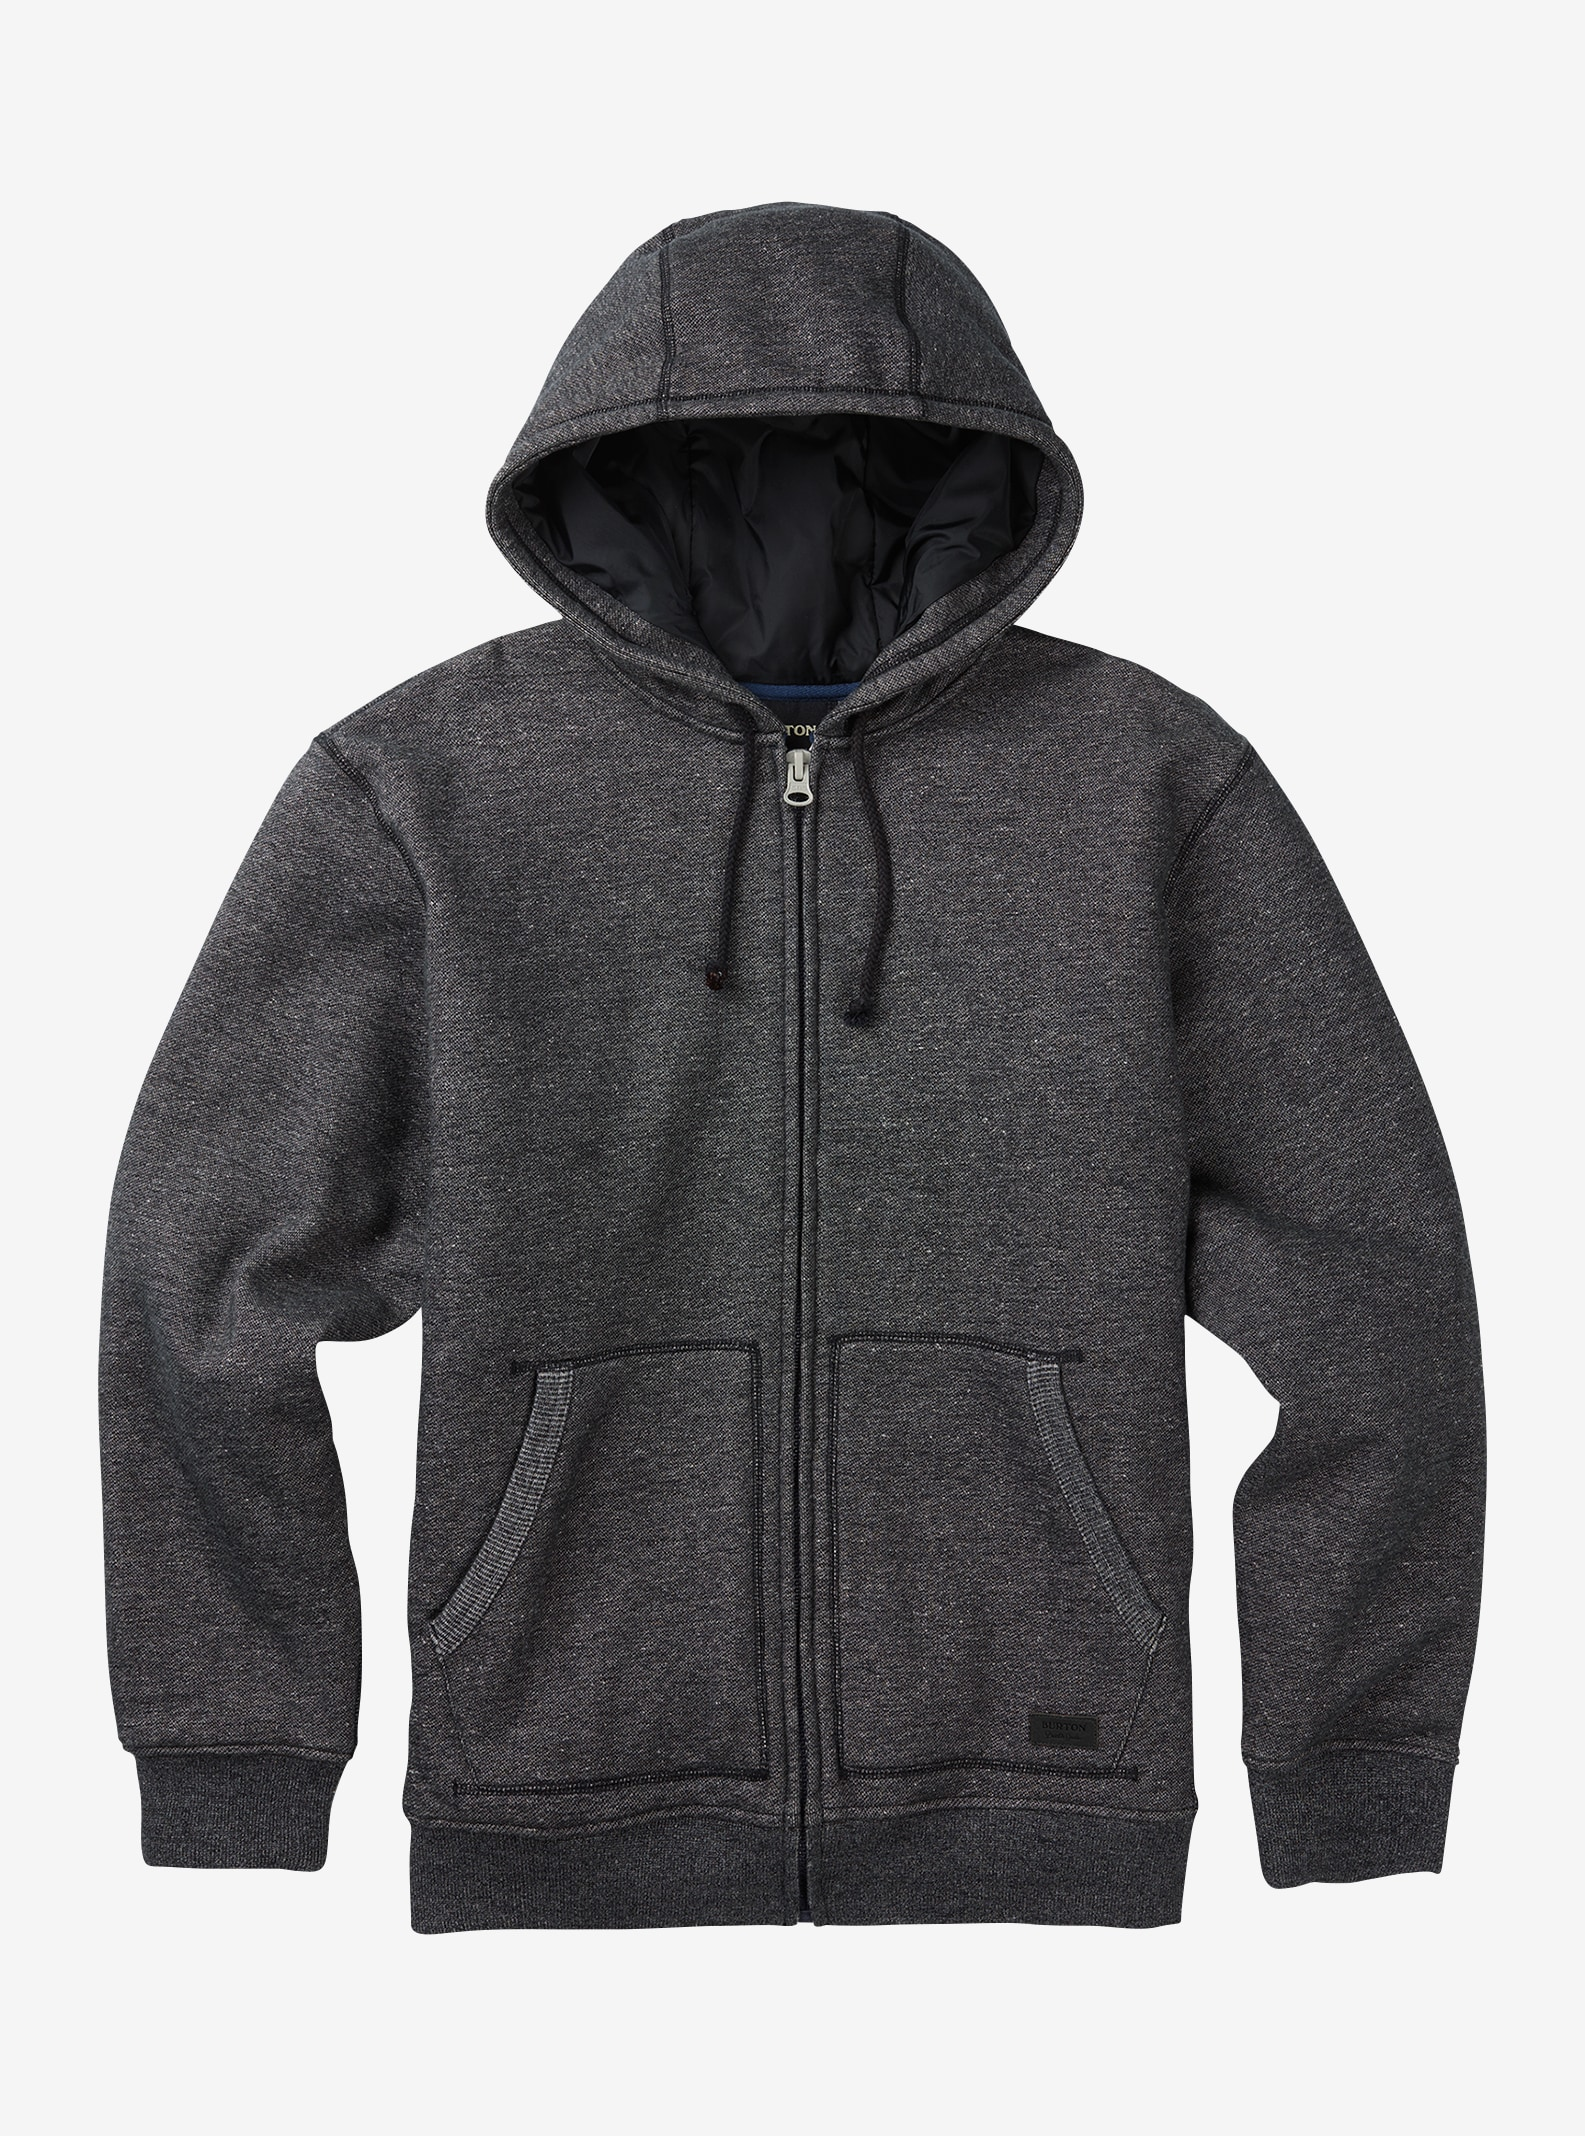 Men's Burton Wakeling Insulated Full-Zip Hoodie shown in True Black Heather